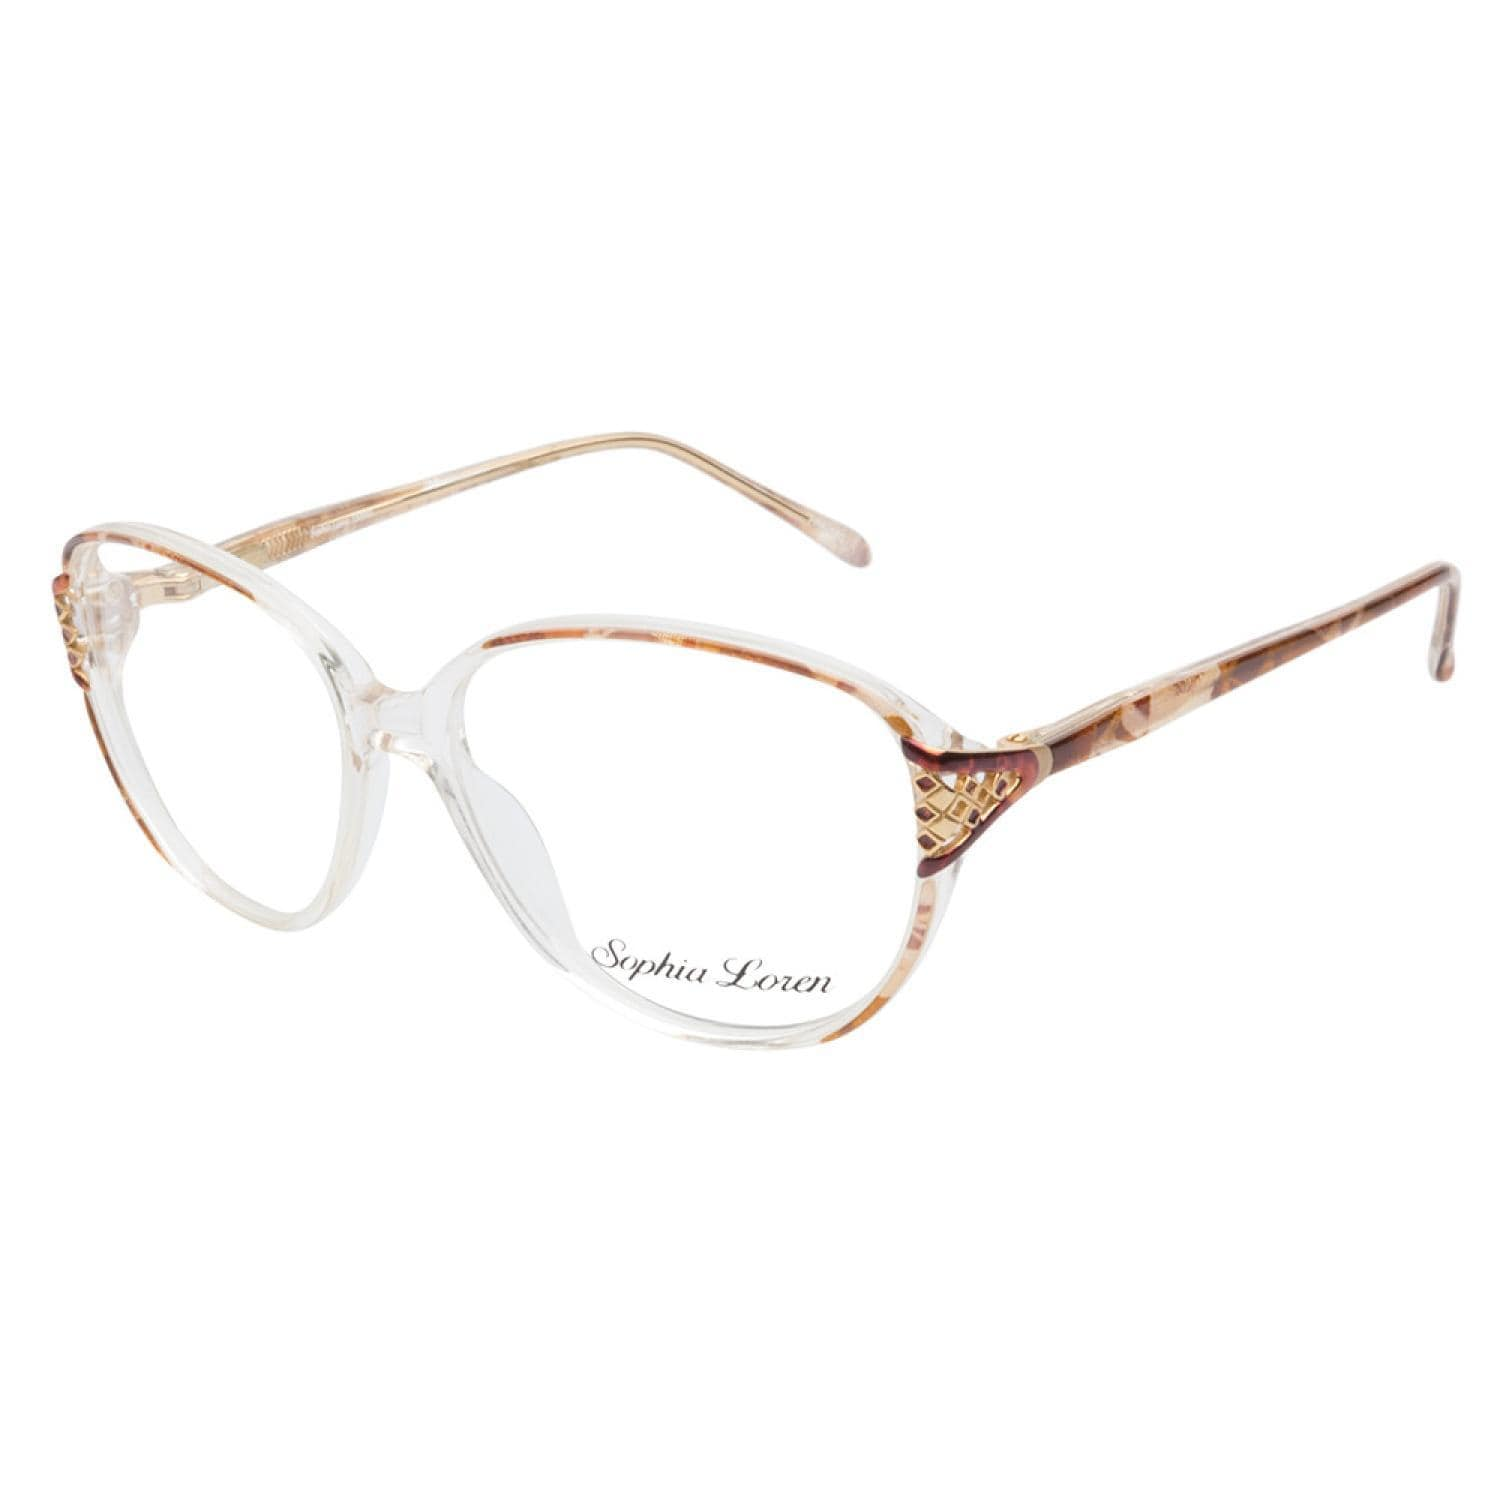 Sophia Loren 1509 183 Brown Prescription Eyeglasses